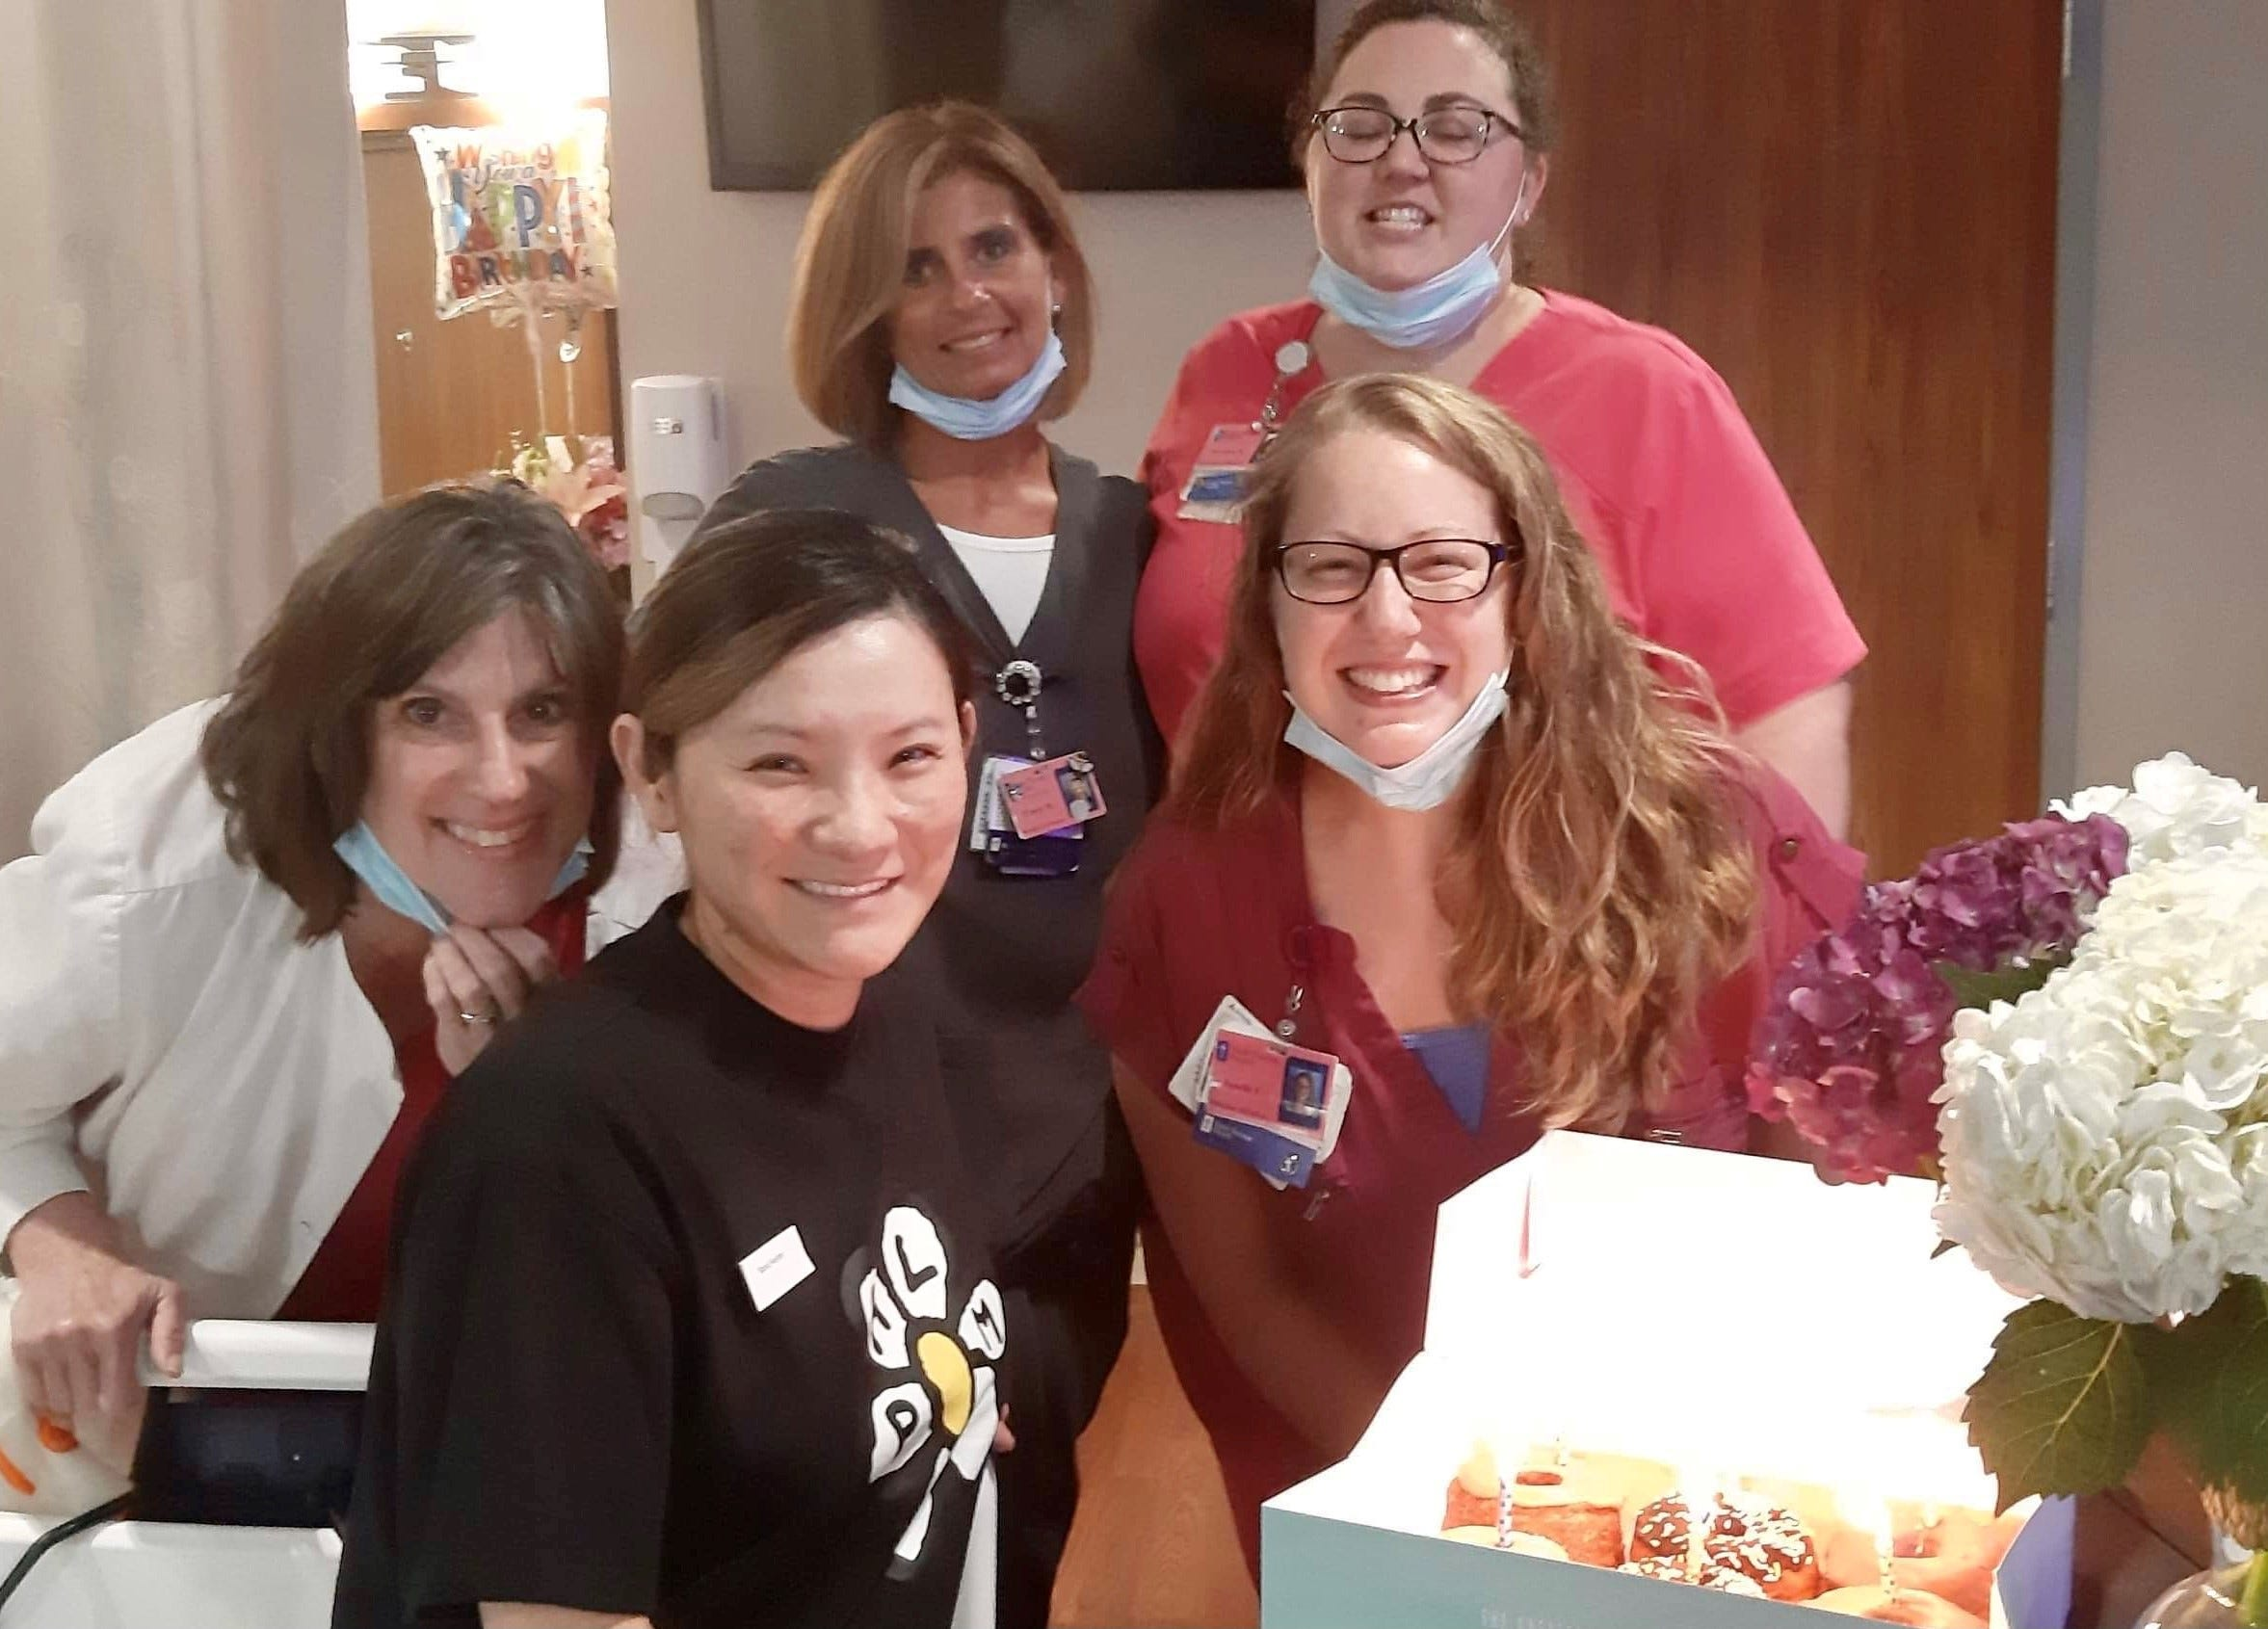 St. Thomas Midtown nurses and techs dance for Miracle Mom's birthday